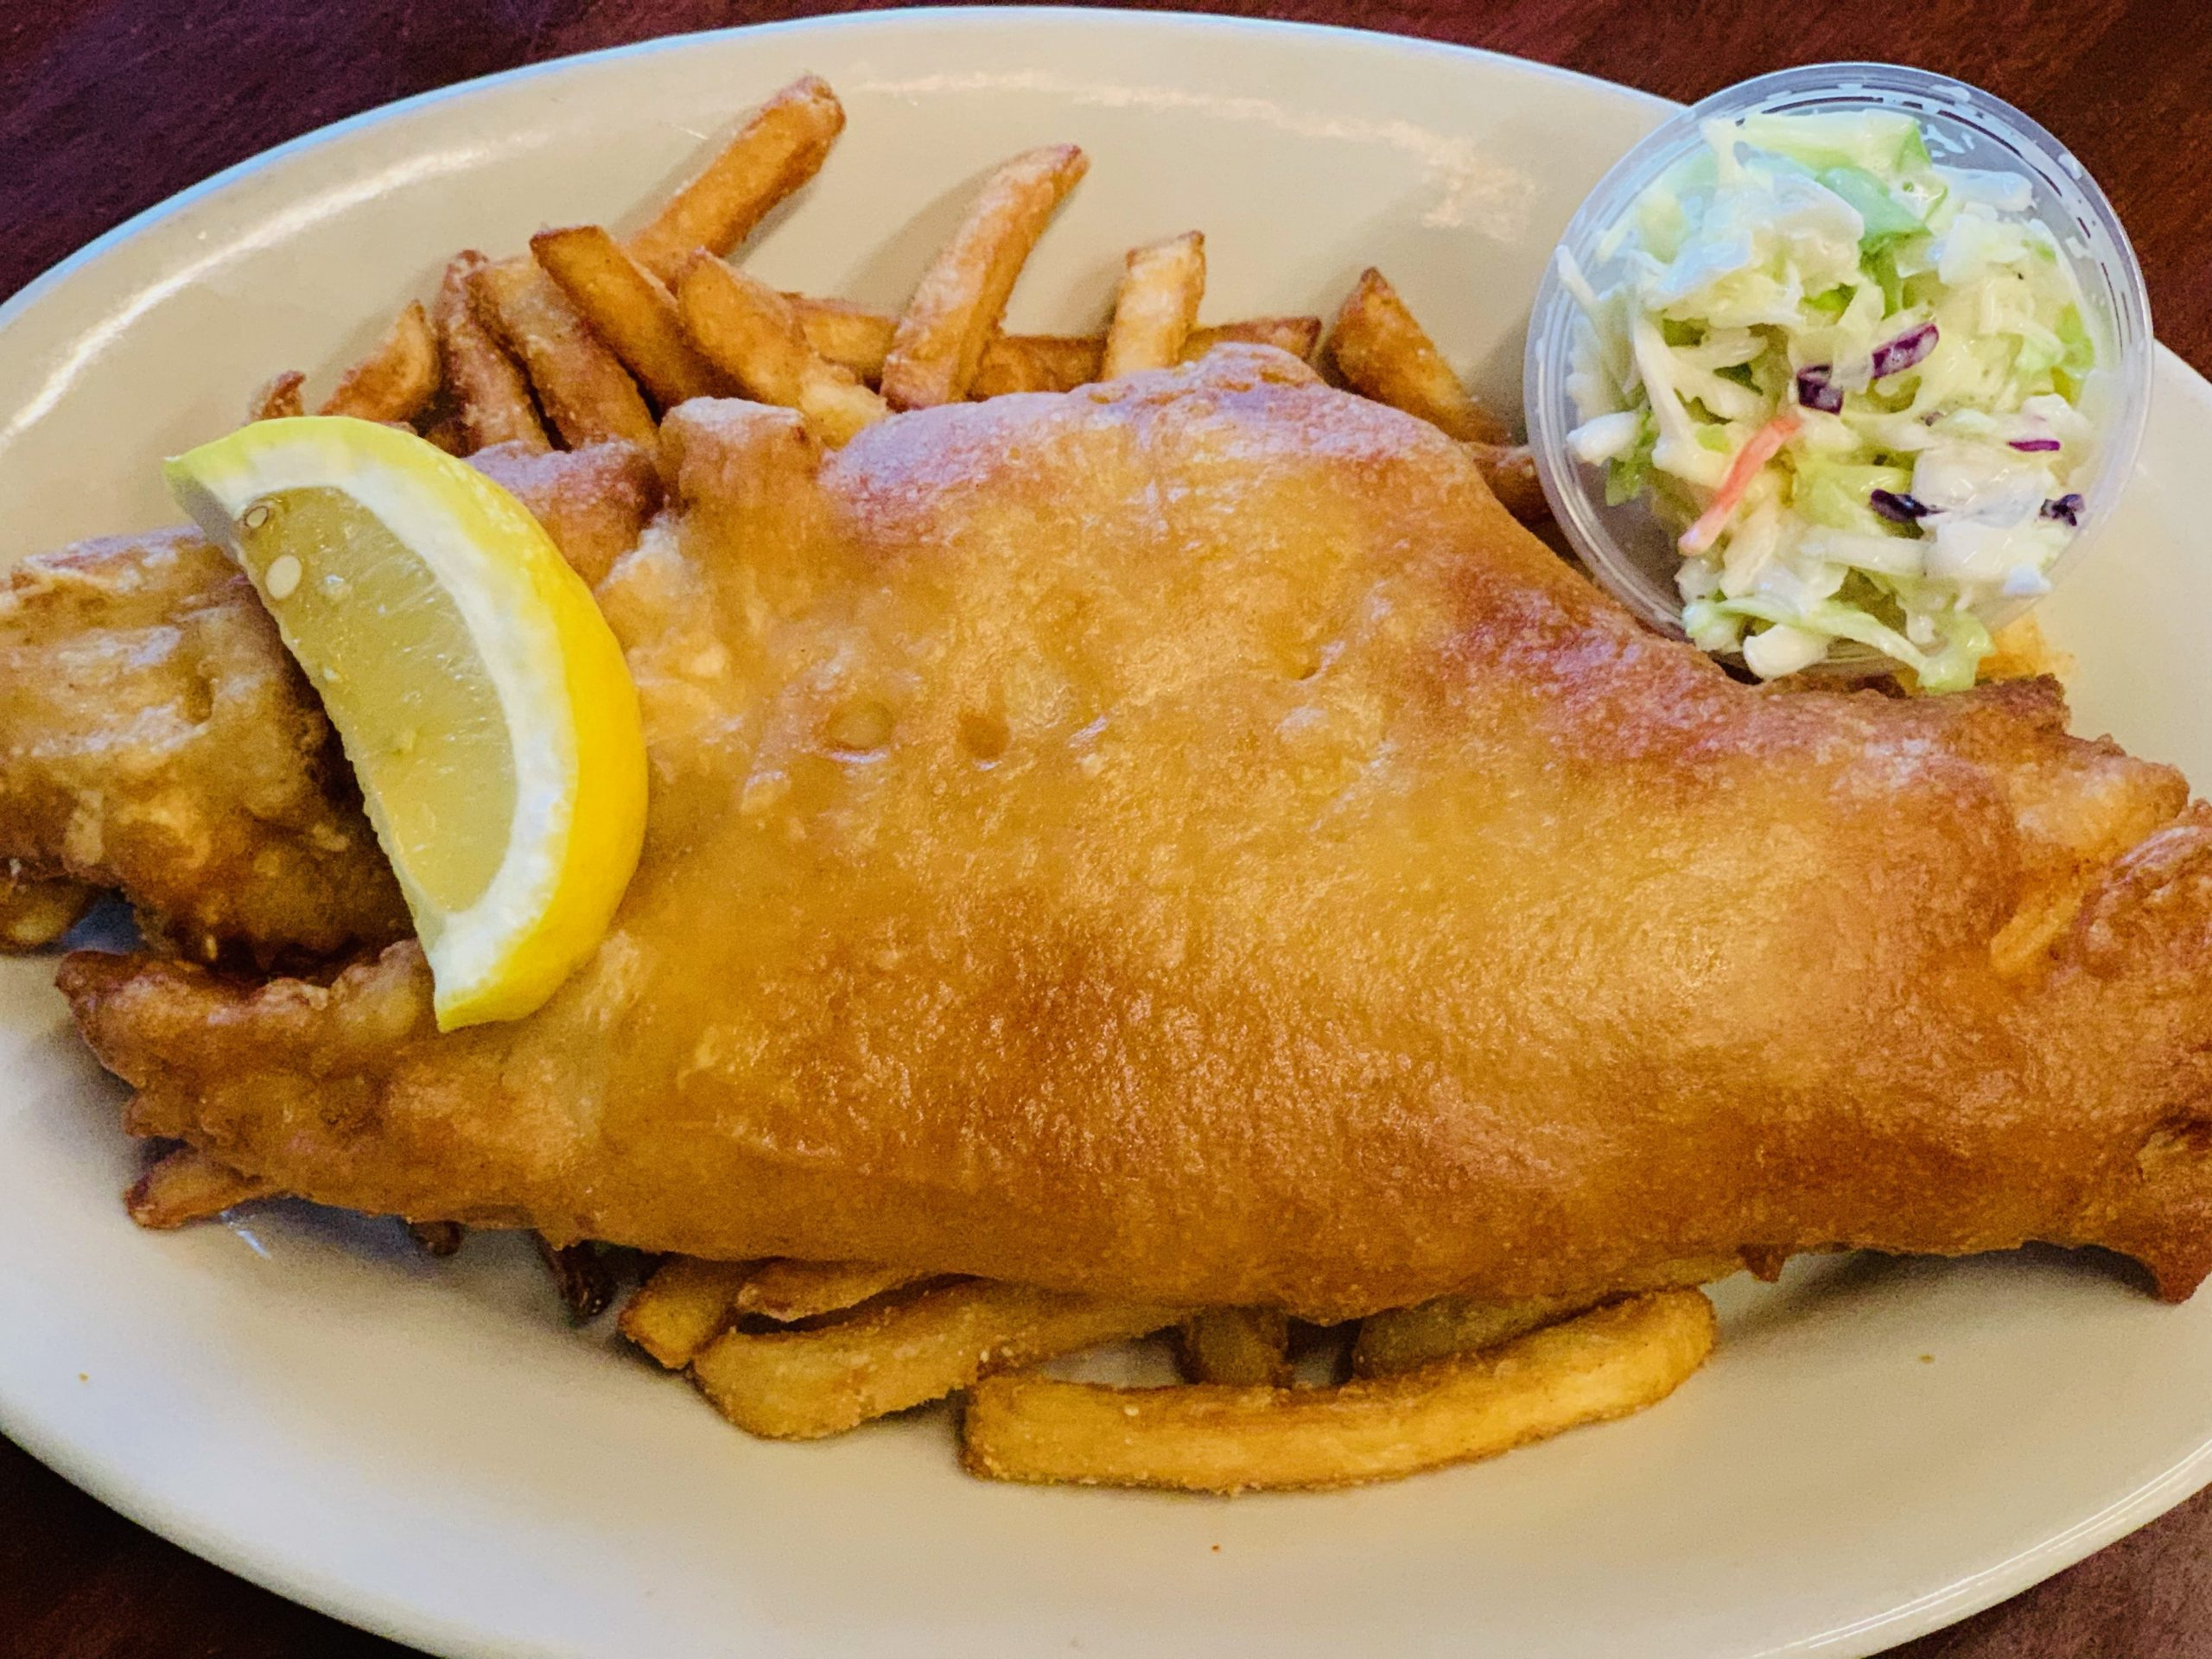 plate of fried fish with french fries and a lemon and coleslaw